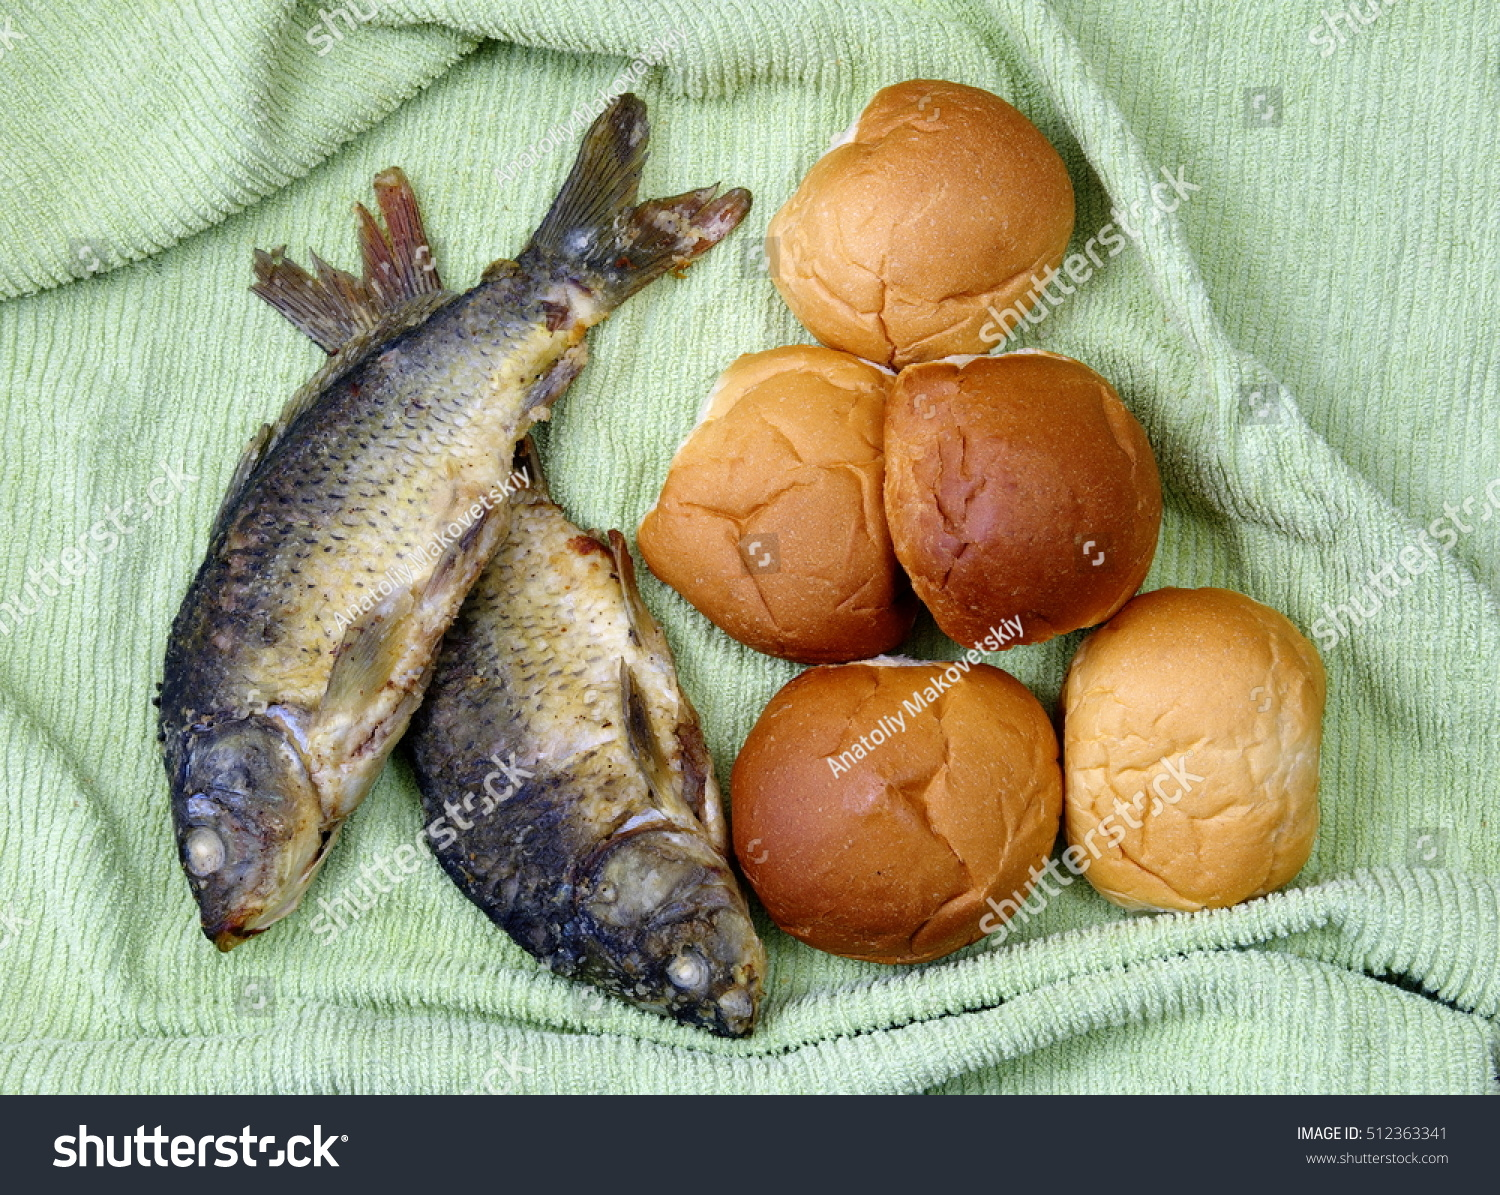 Five loaves two fishes stock photo 512363341 shutterstock for Loaves and fish